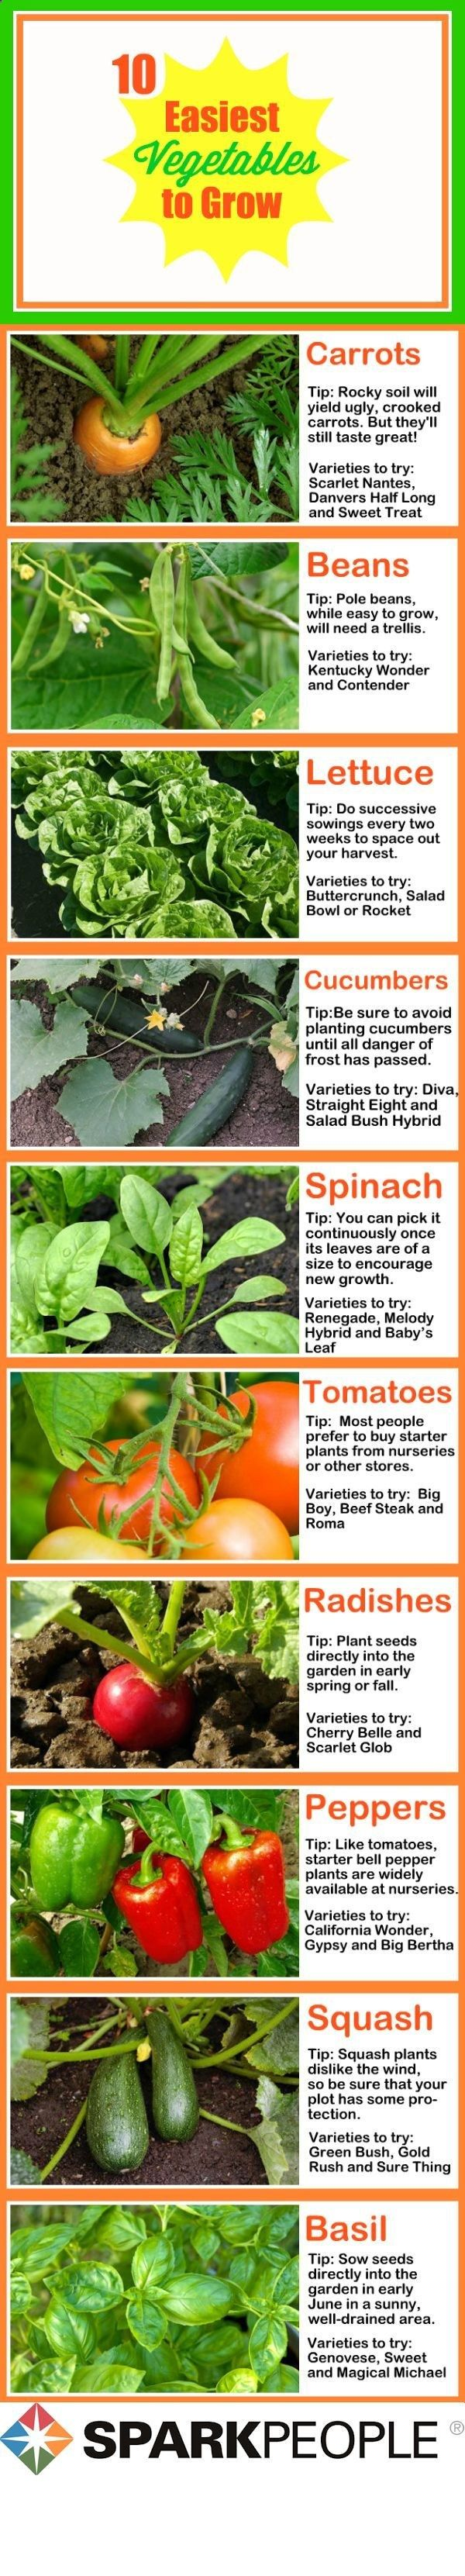 The 10 Easiest Vegetables To Grow: You Donu0027t Have To Have A Green Thumb To  Grow These Easy Plants!